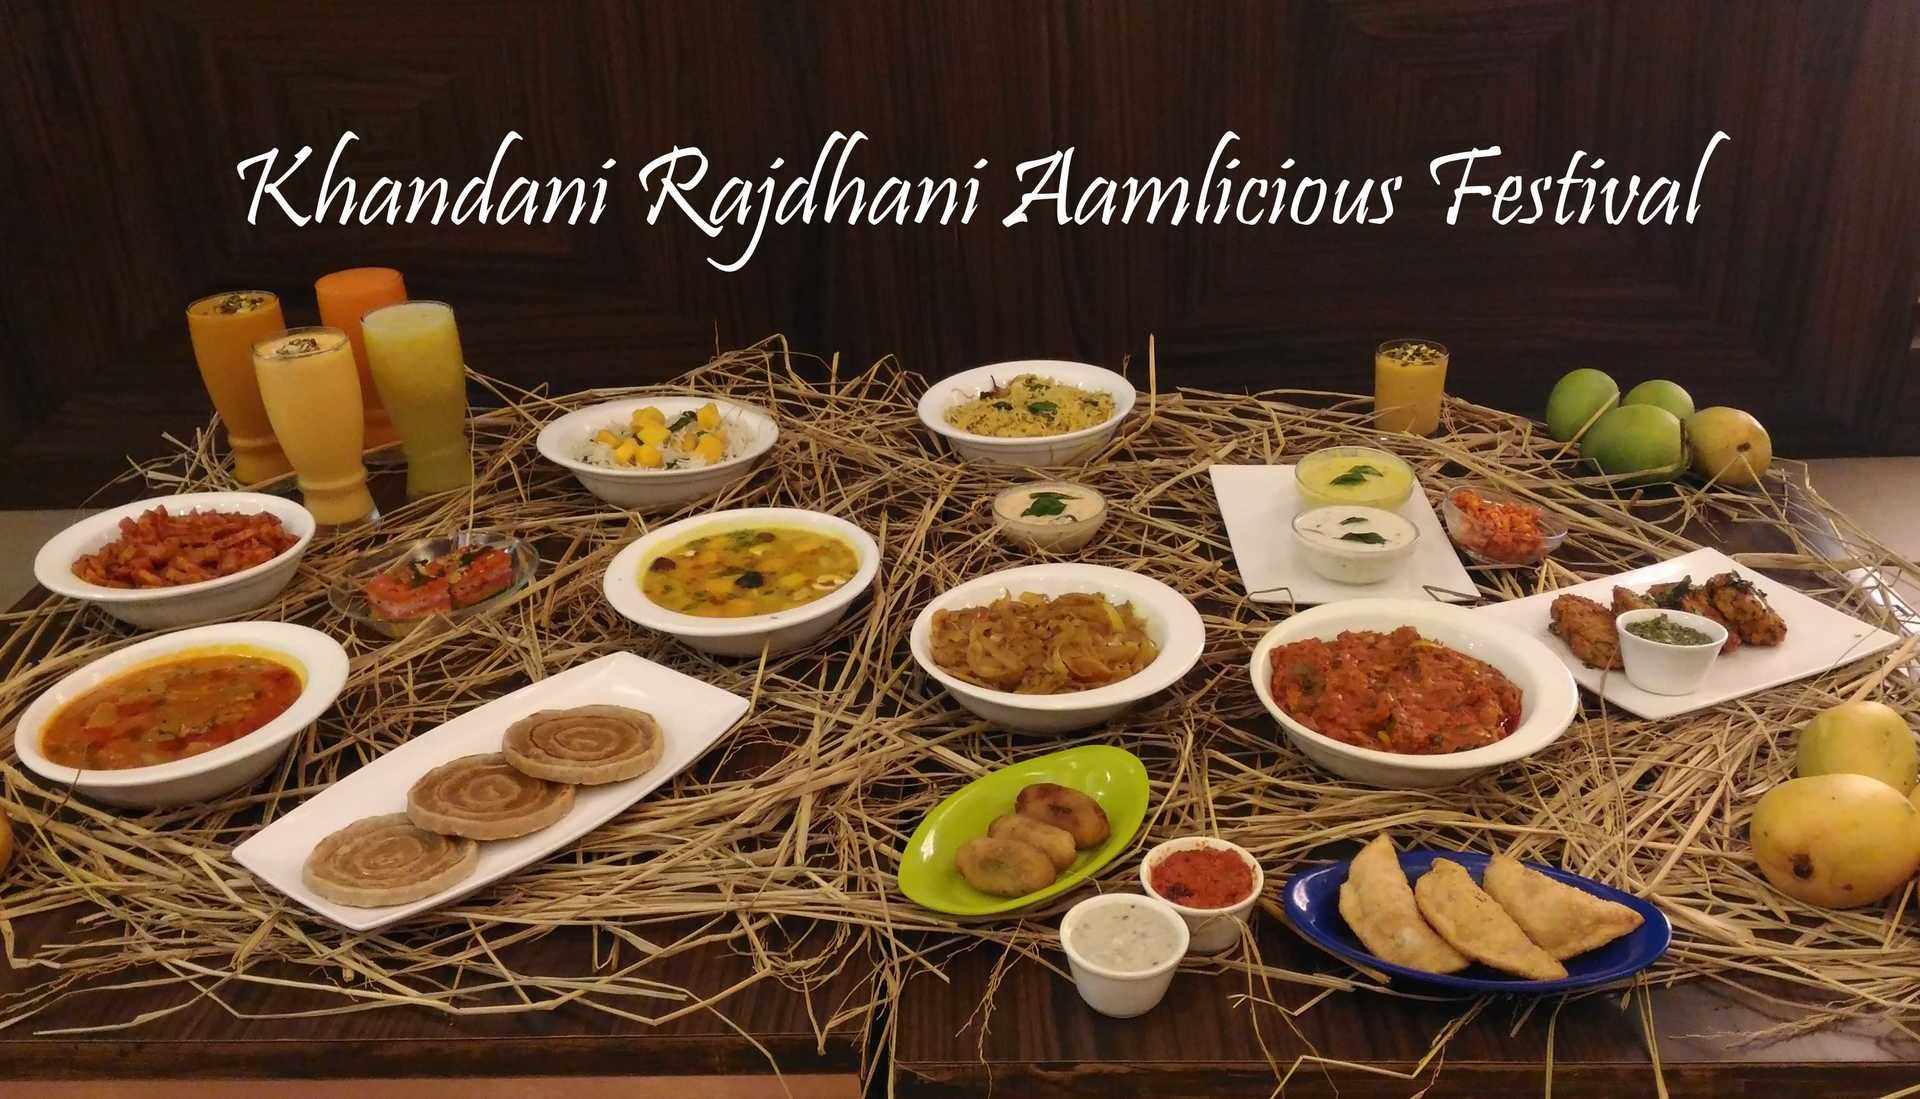 REVIEW: Aamlicious Festival, Rajdhani + Giveaway image